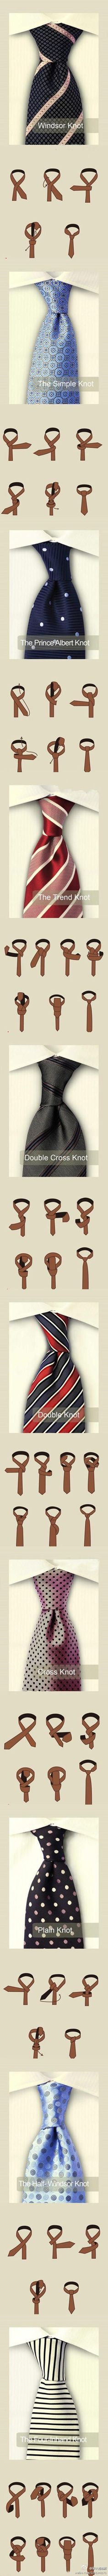 Ties! This will be useful in the future.